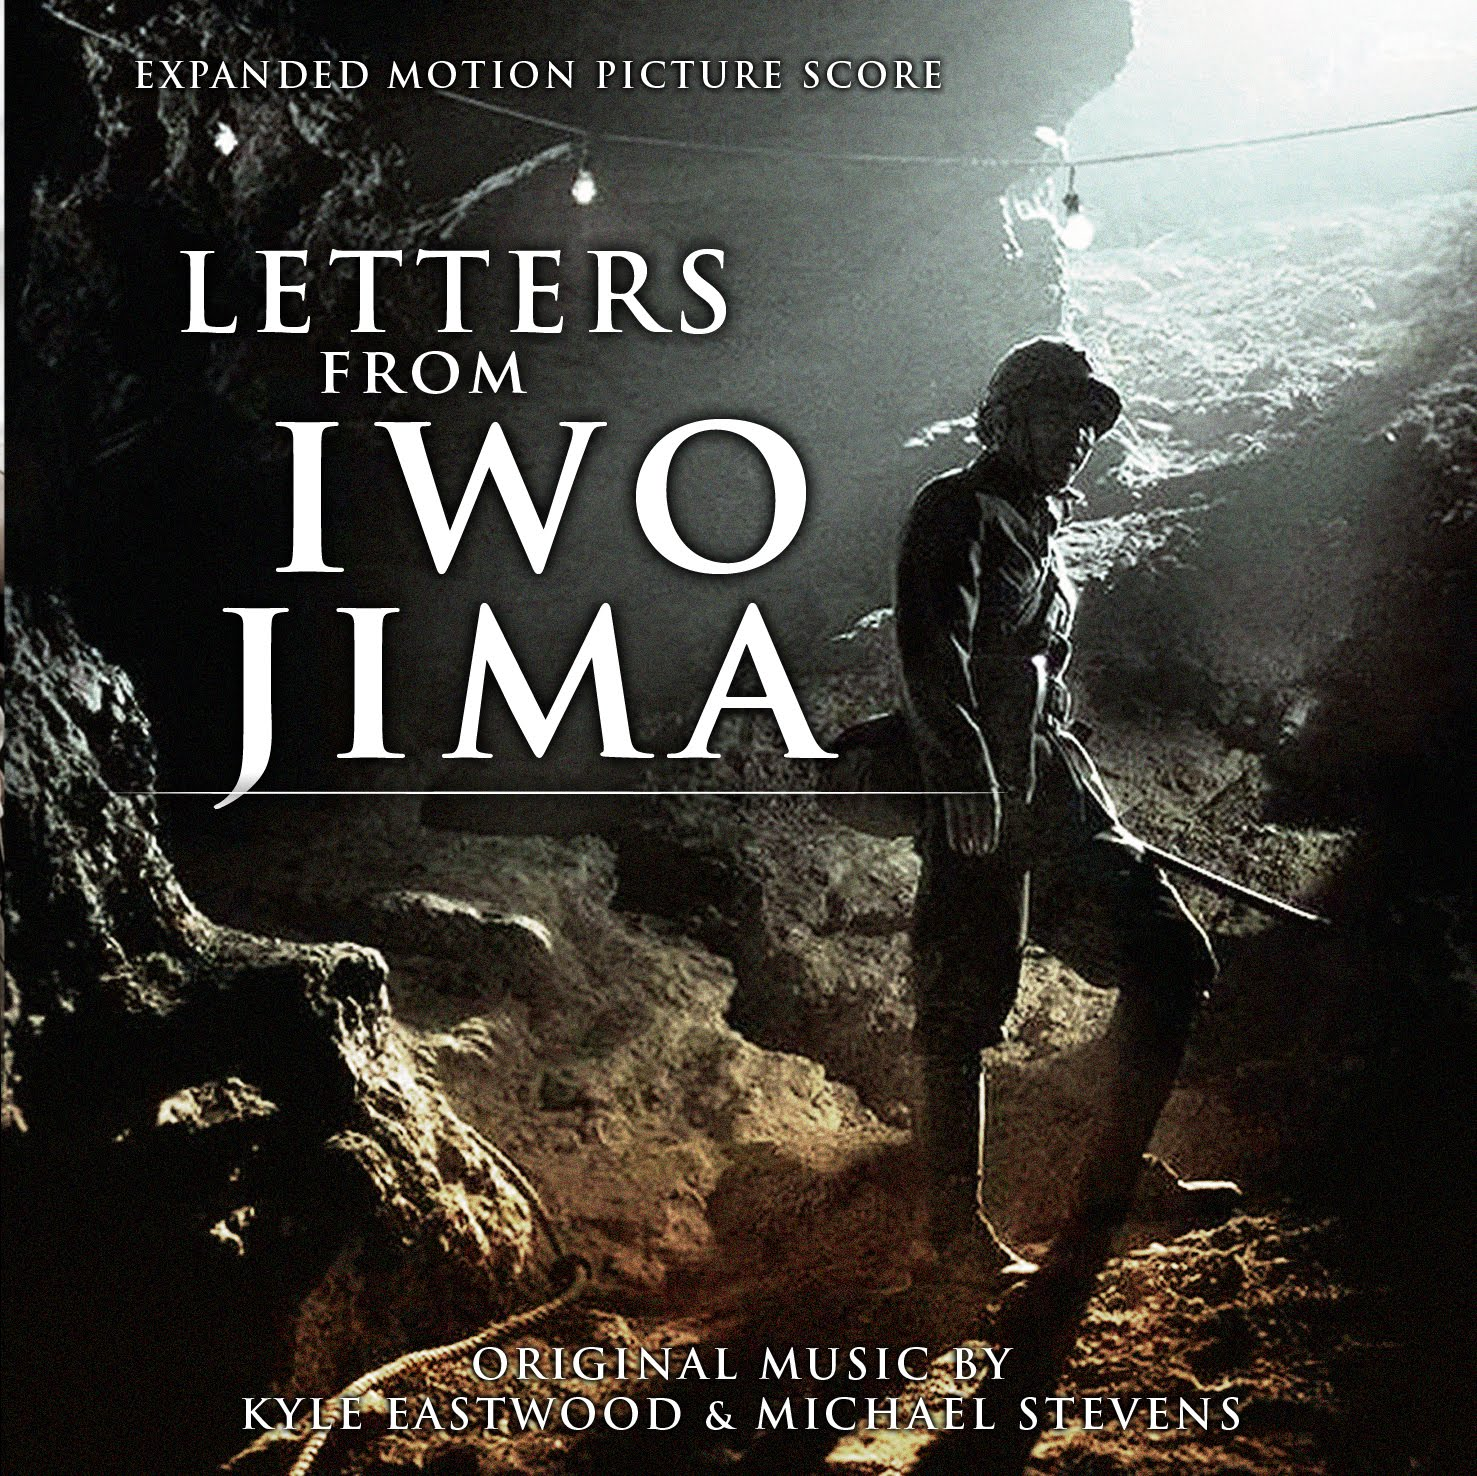 Letters From Iwo Jima Expanded Kyle Eastwood Michael Stevens